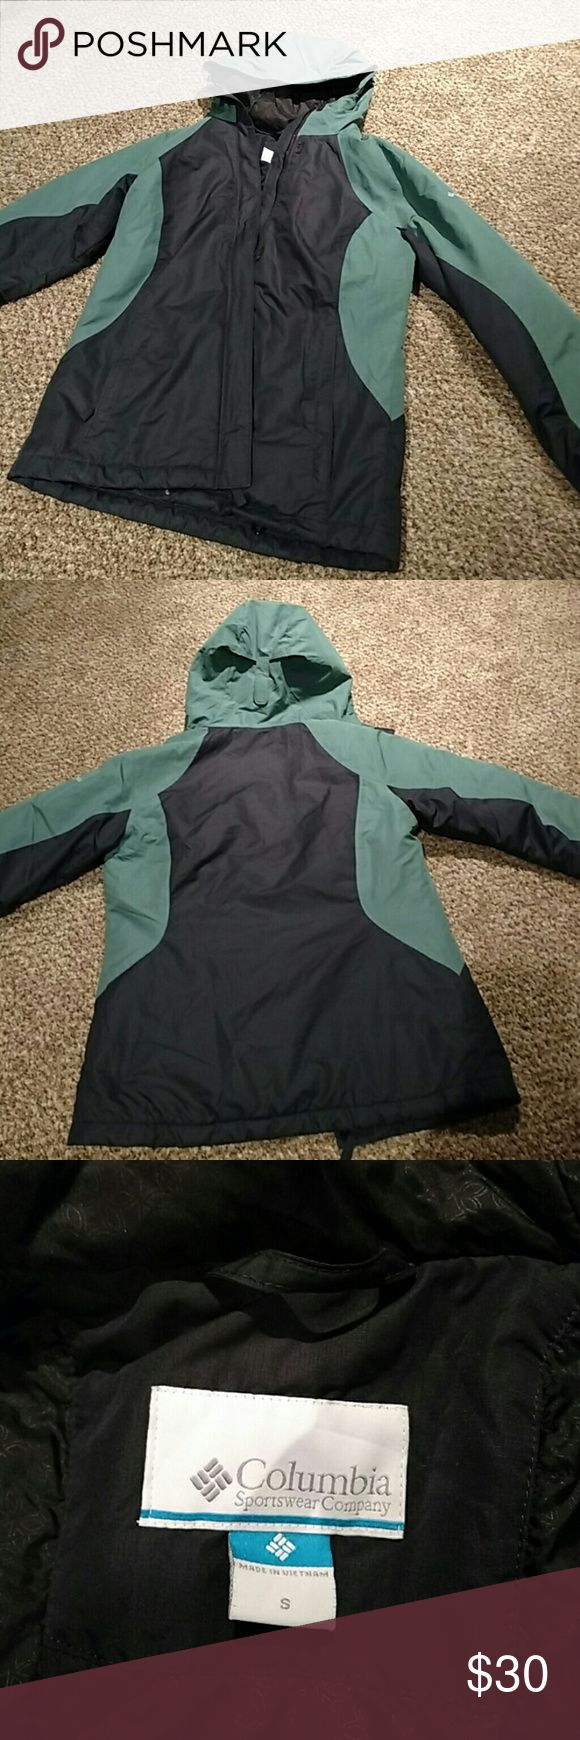 Columbia coat! Size small medium weight Columbia coat! Teal and black colors. Re-posh as I bought a different one and just don't need this one. Great condition! Columbia Jackets & Coats